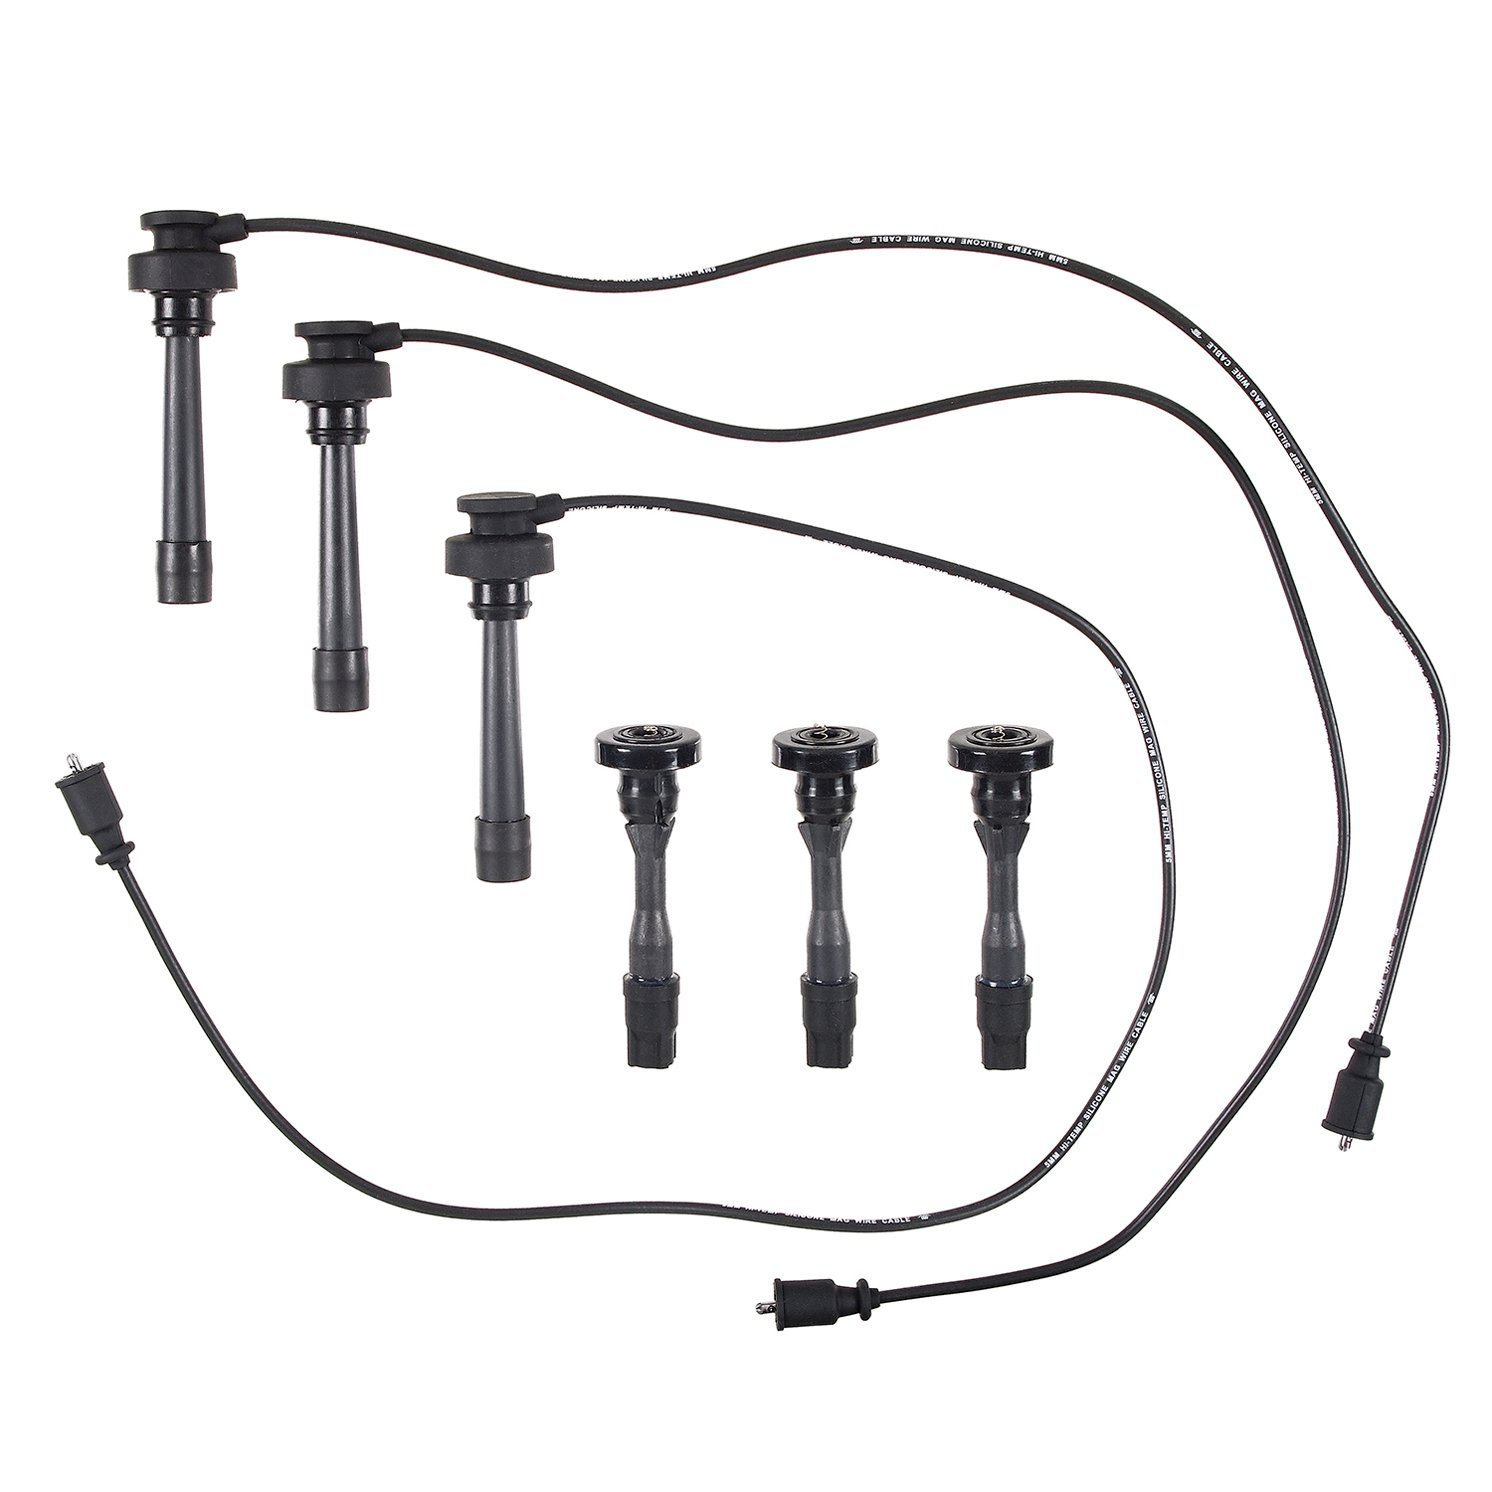 Proconnect Spark Plug Wire And Coil Boot Kit